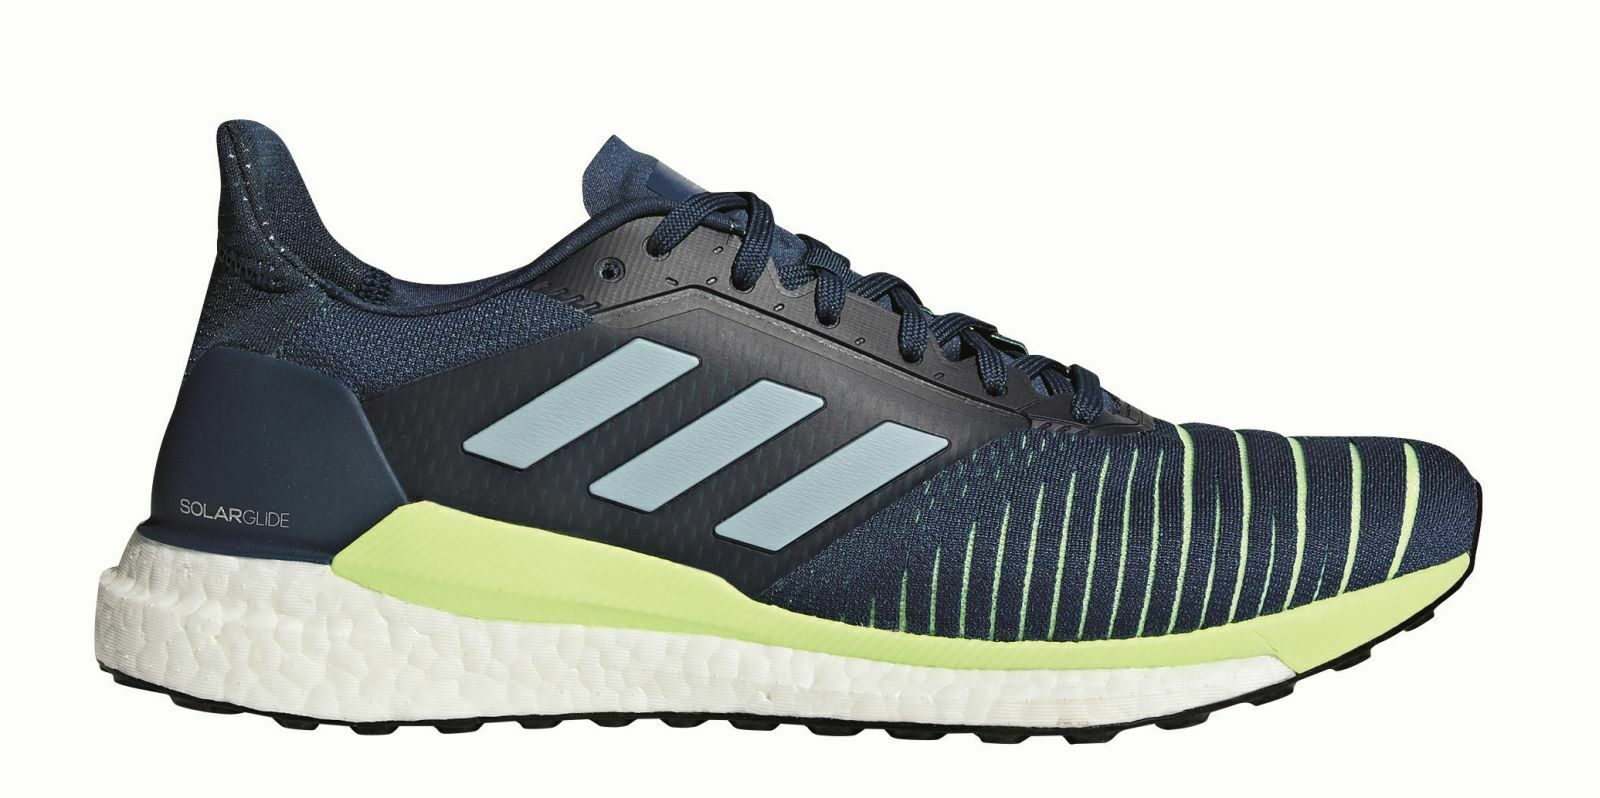 Adidas Performance Men's Running shoes Solar Glide M Legend